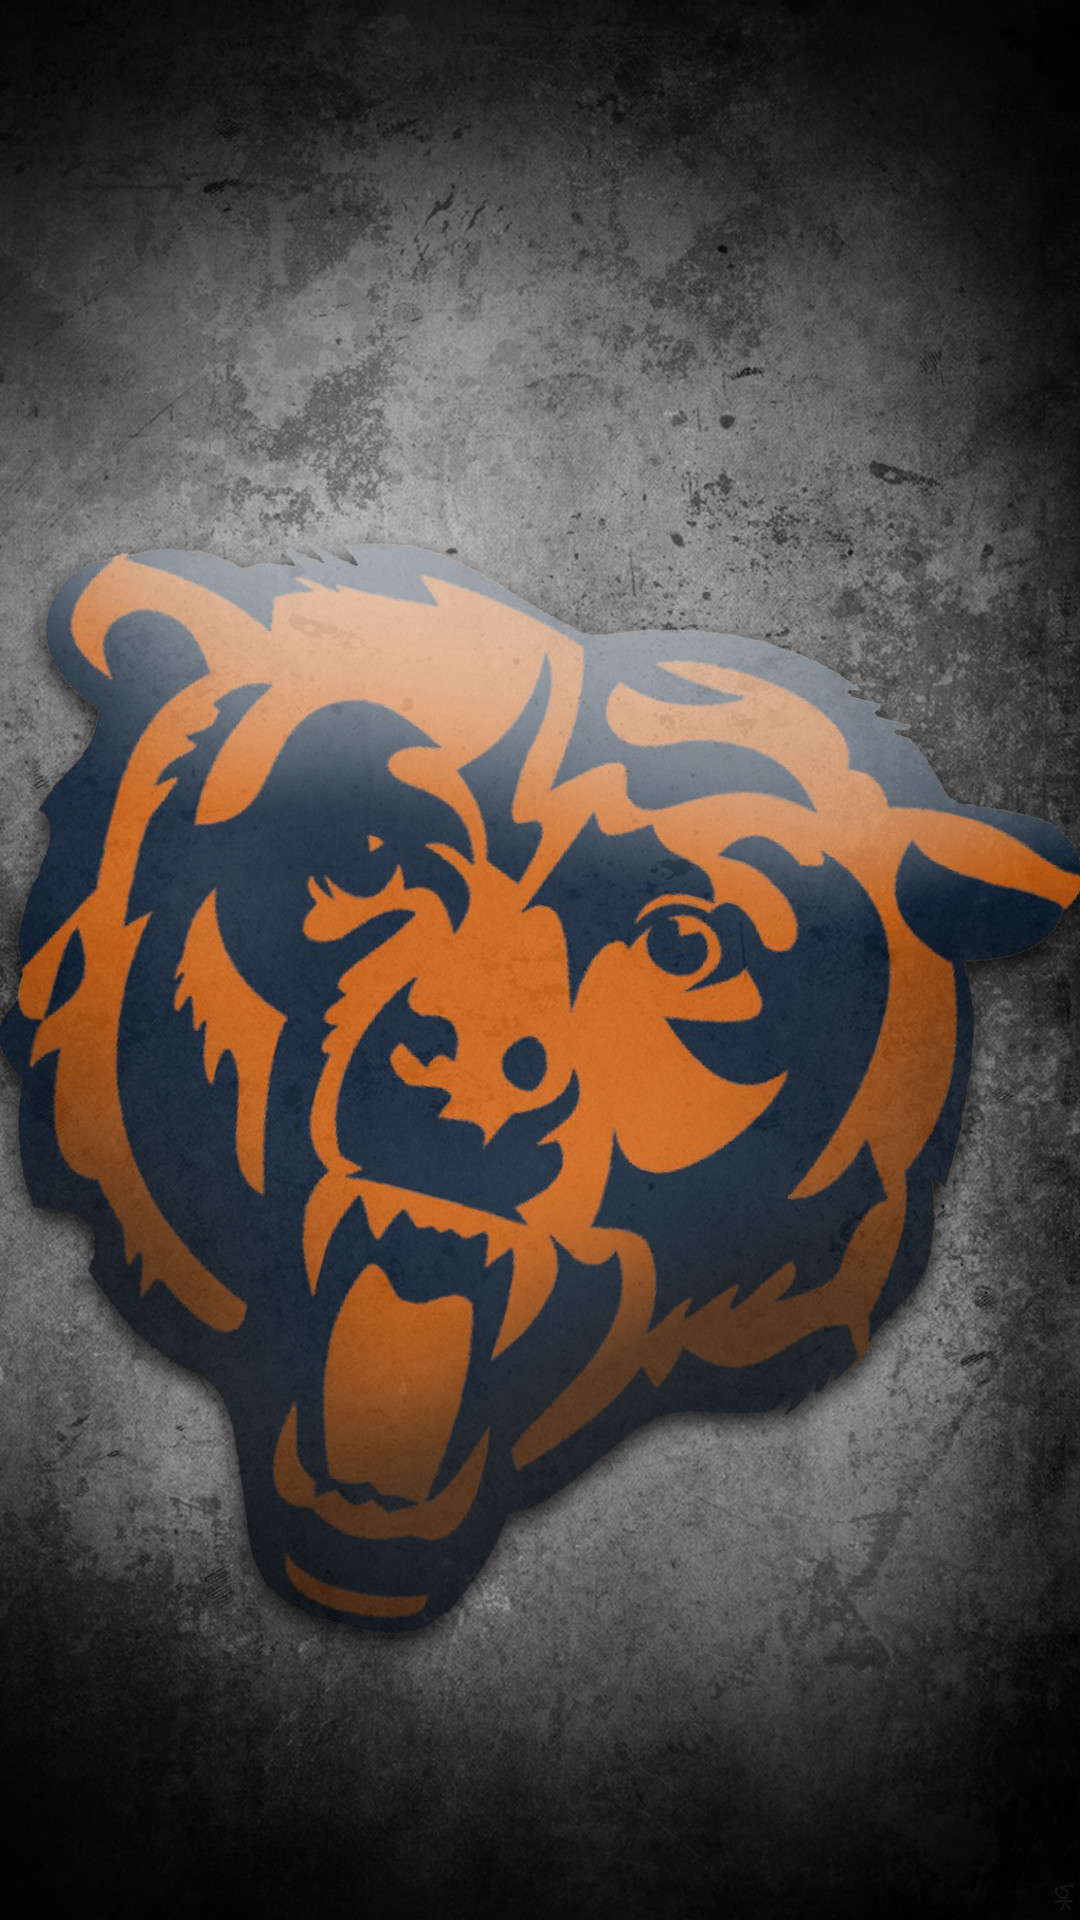 1080x1920 Chicago Bears Wallpaper For Iphone